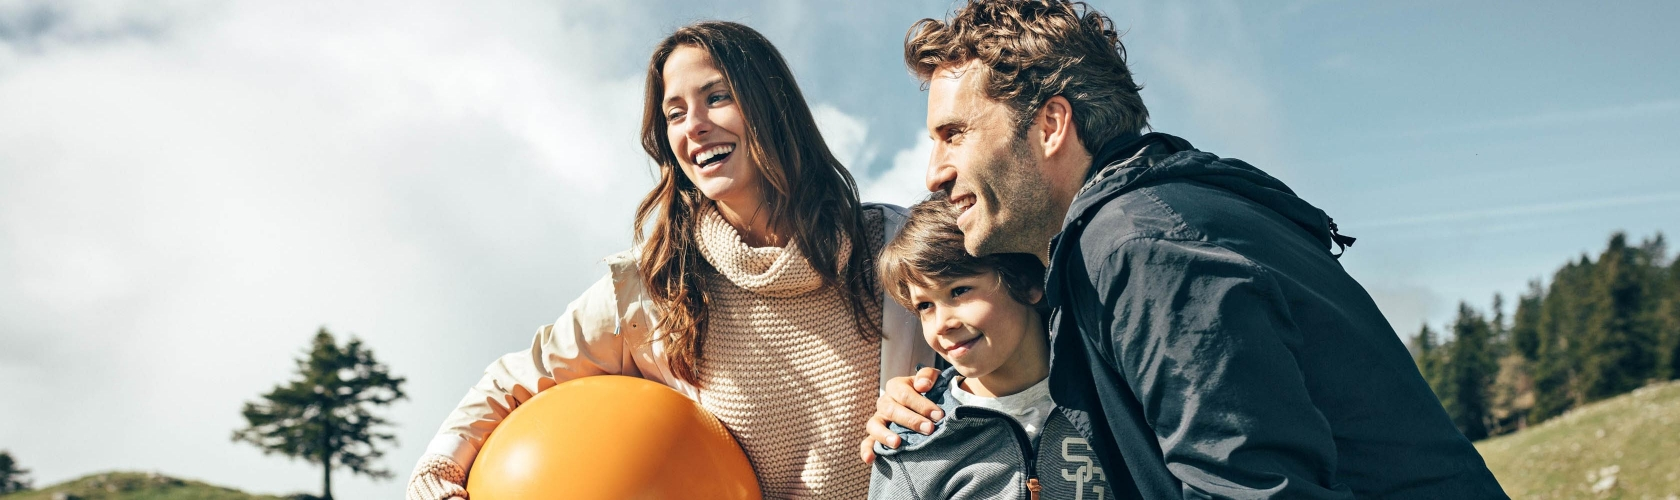 The family insurance by CONCORDIA offers more for families.